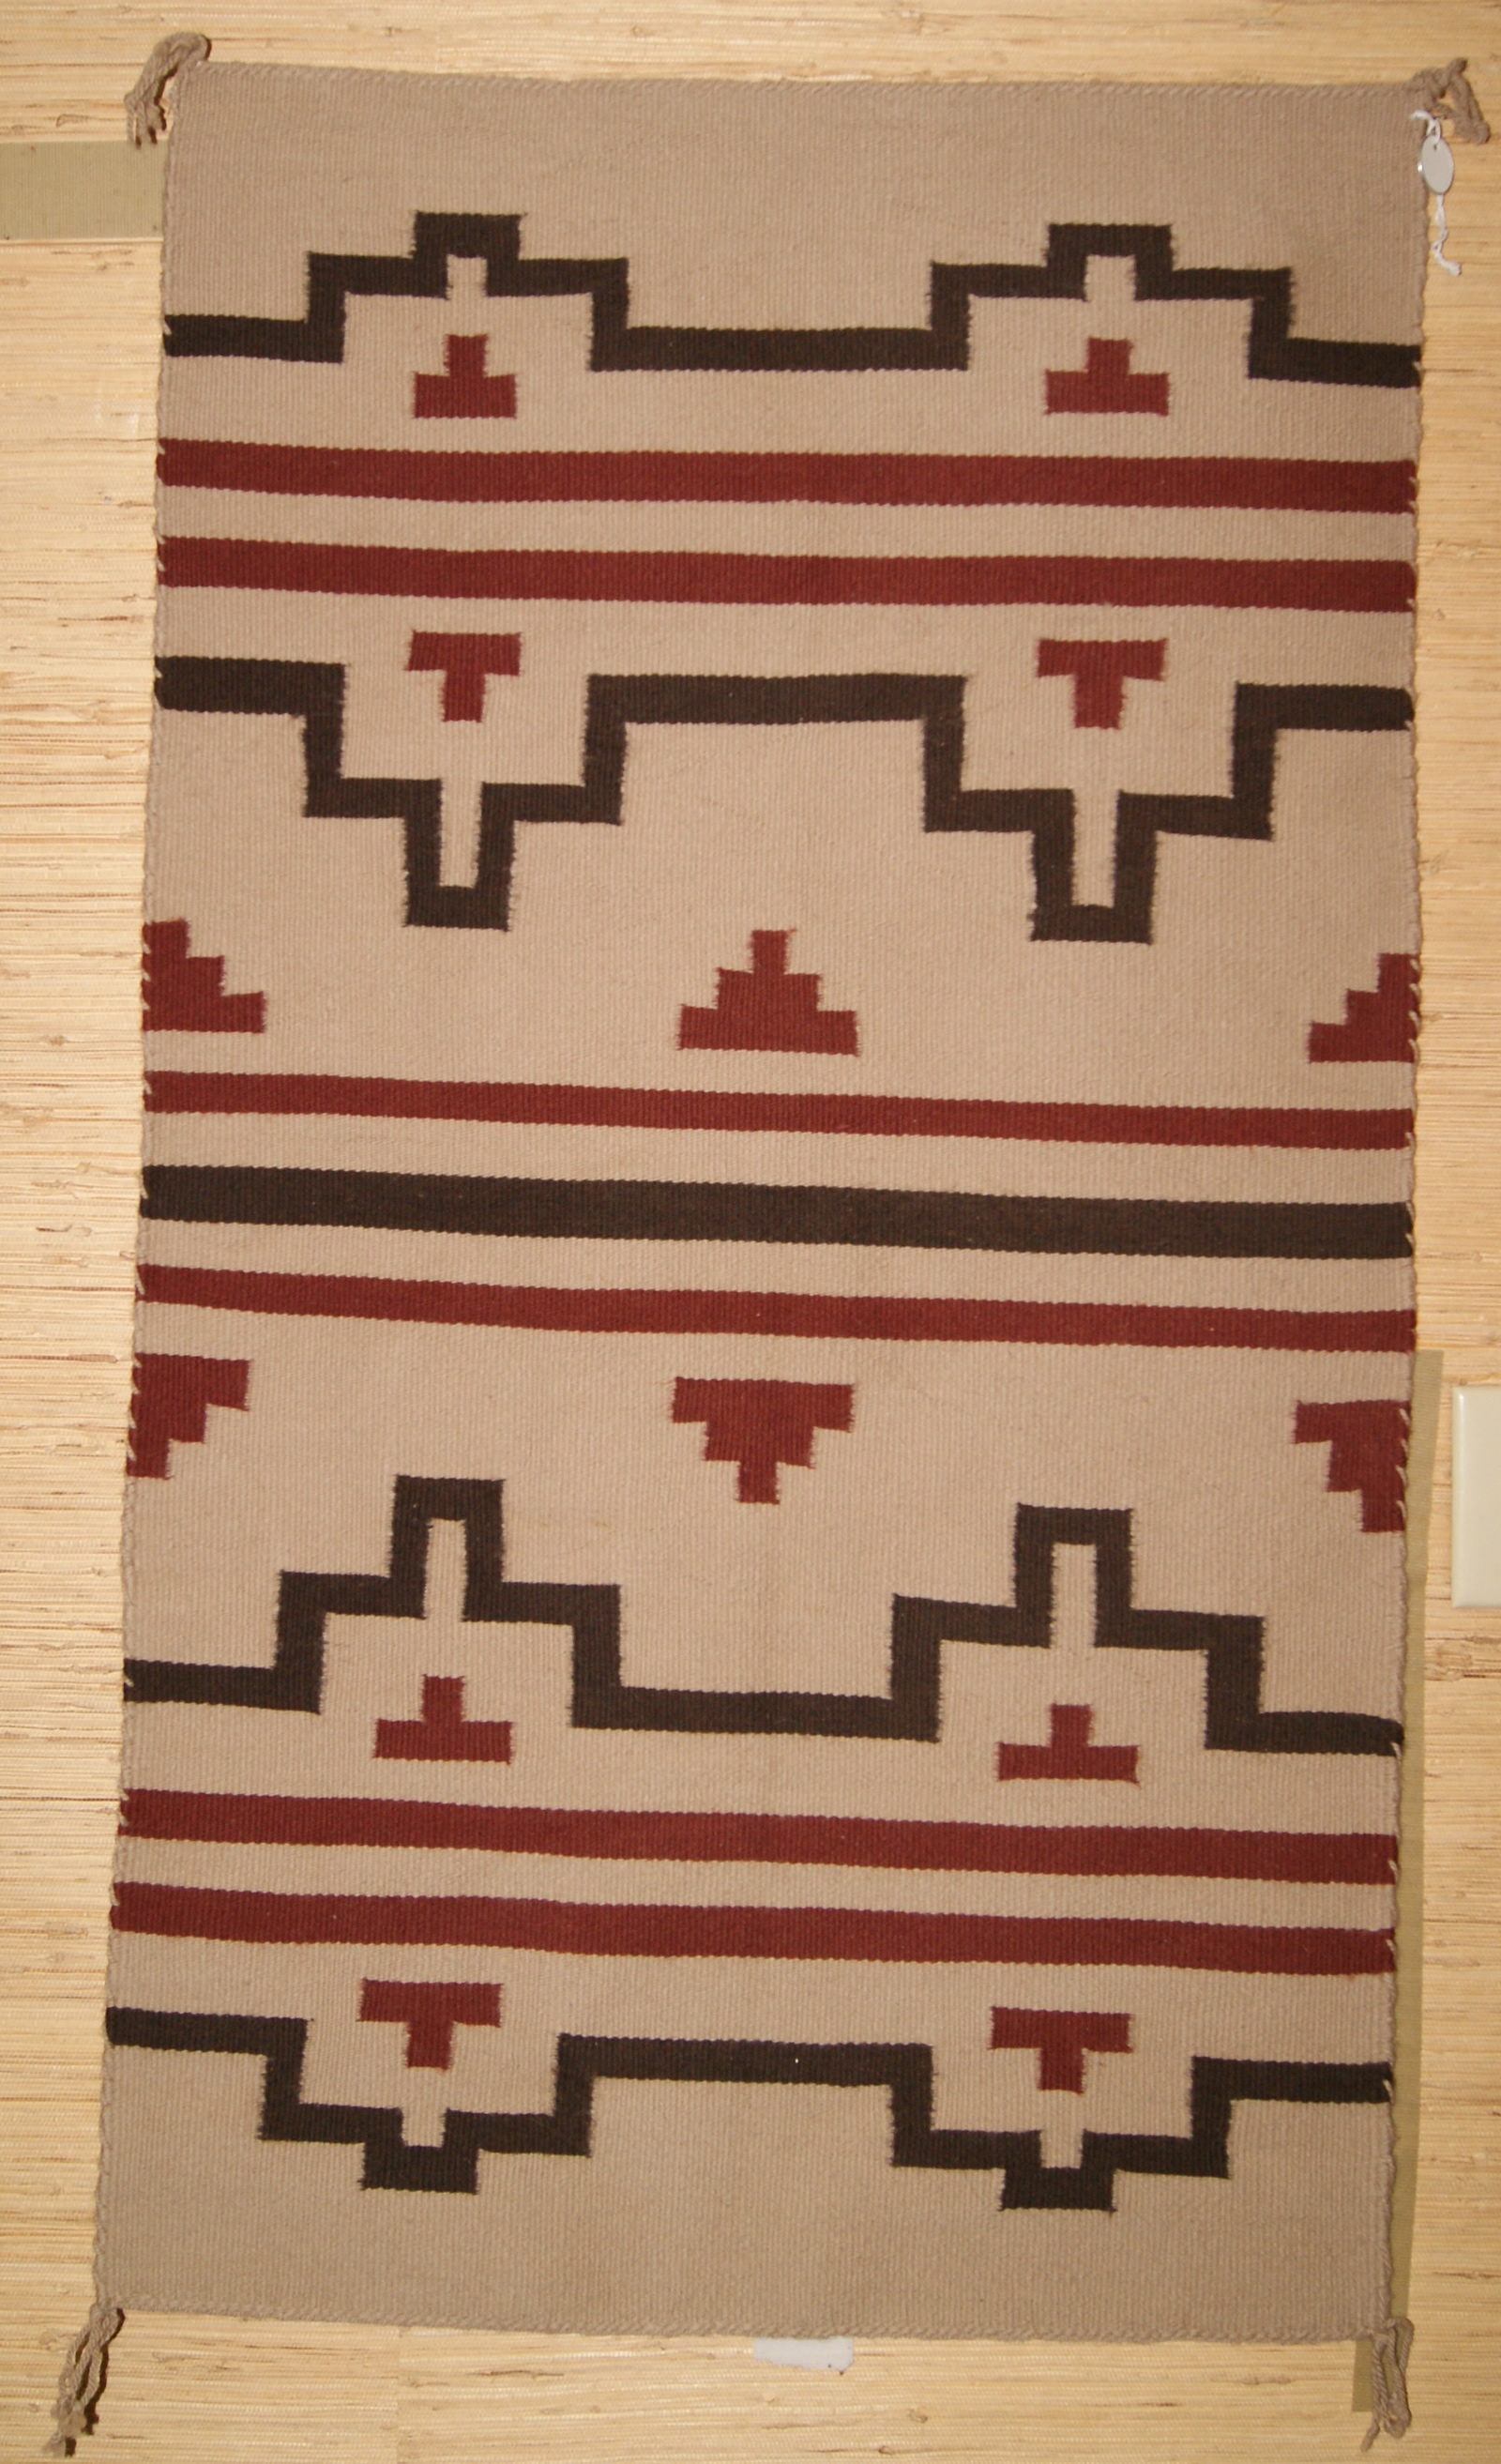 Navajo indian designs Cherokee Indian Navajo Rug With Stepped Design For Sale 046 Dreamstimecom Navajo Rug With Stepped Design For Sale